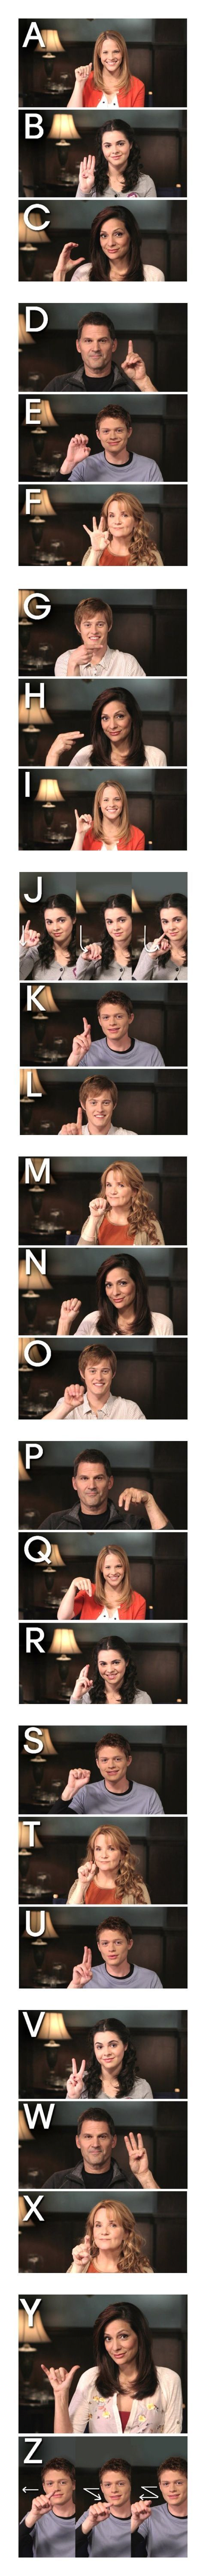 American Sign Language alphabet from the Switched at Birth cast #signlanguage